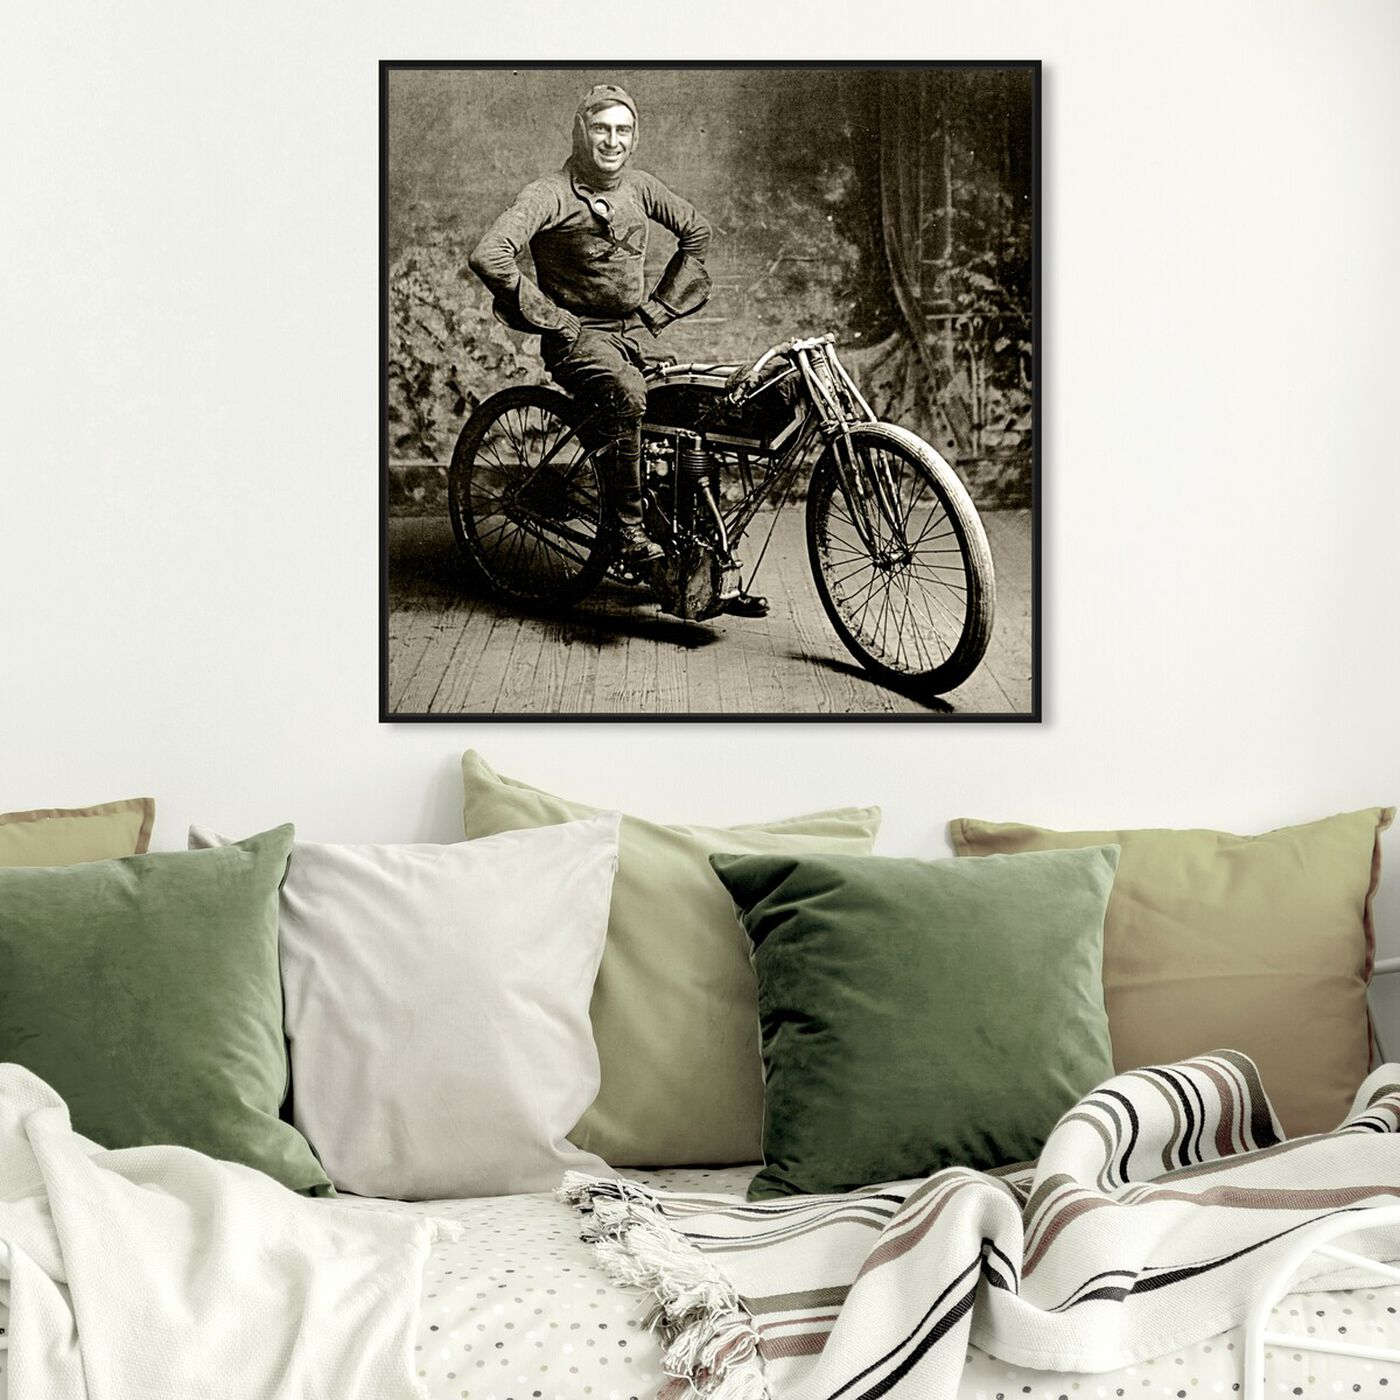 Hanging view of Motocicleta II featuring transportation and motorcycles art.